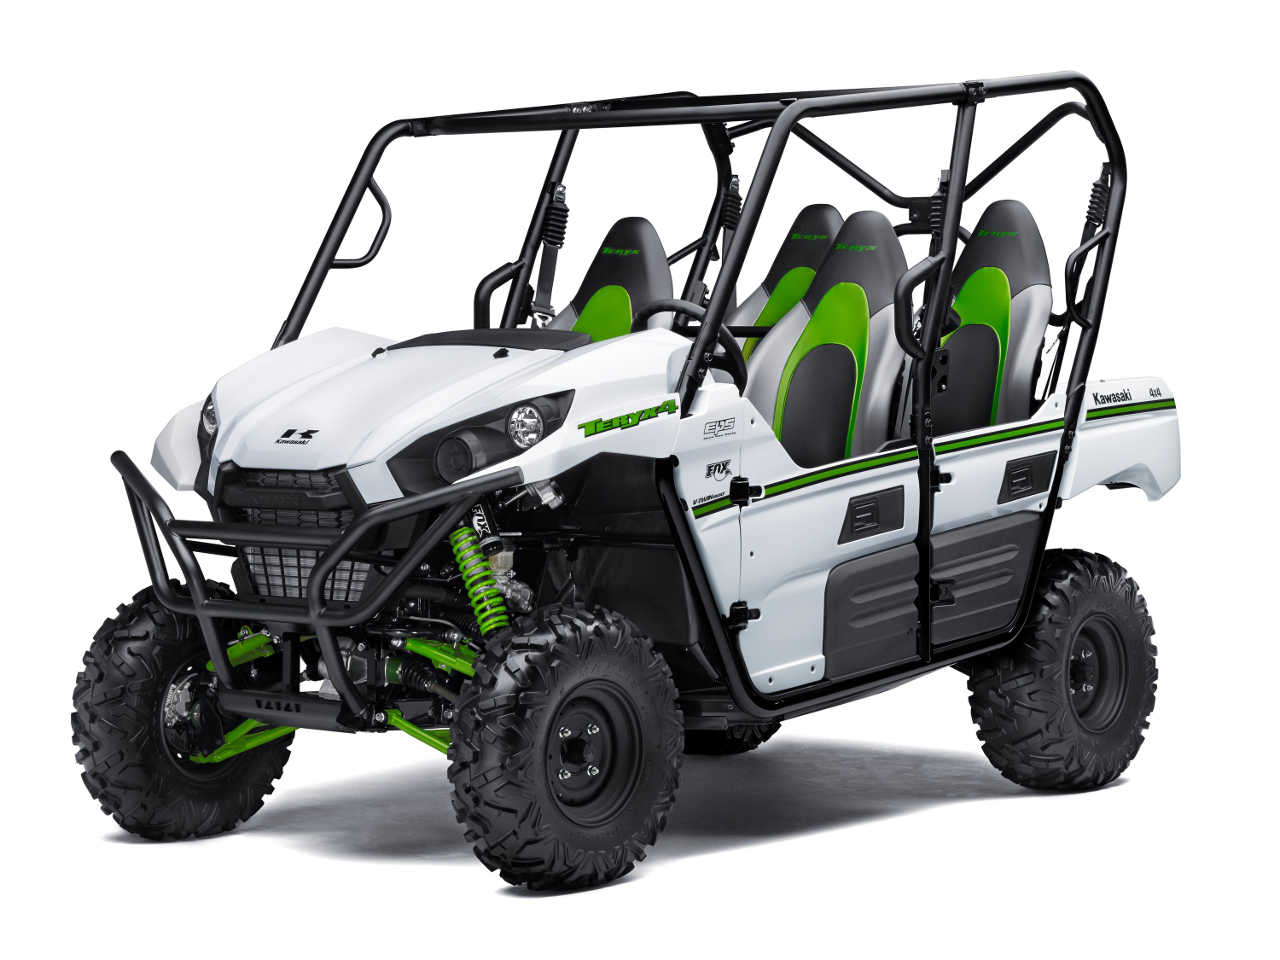 Kawasaki Teryx Accessories For Sale